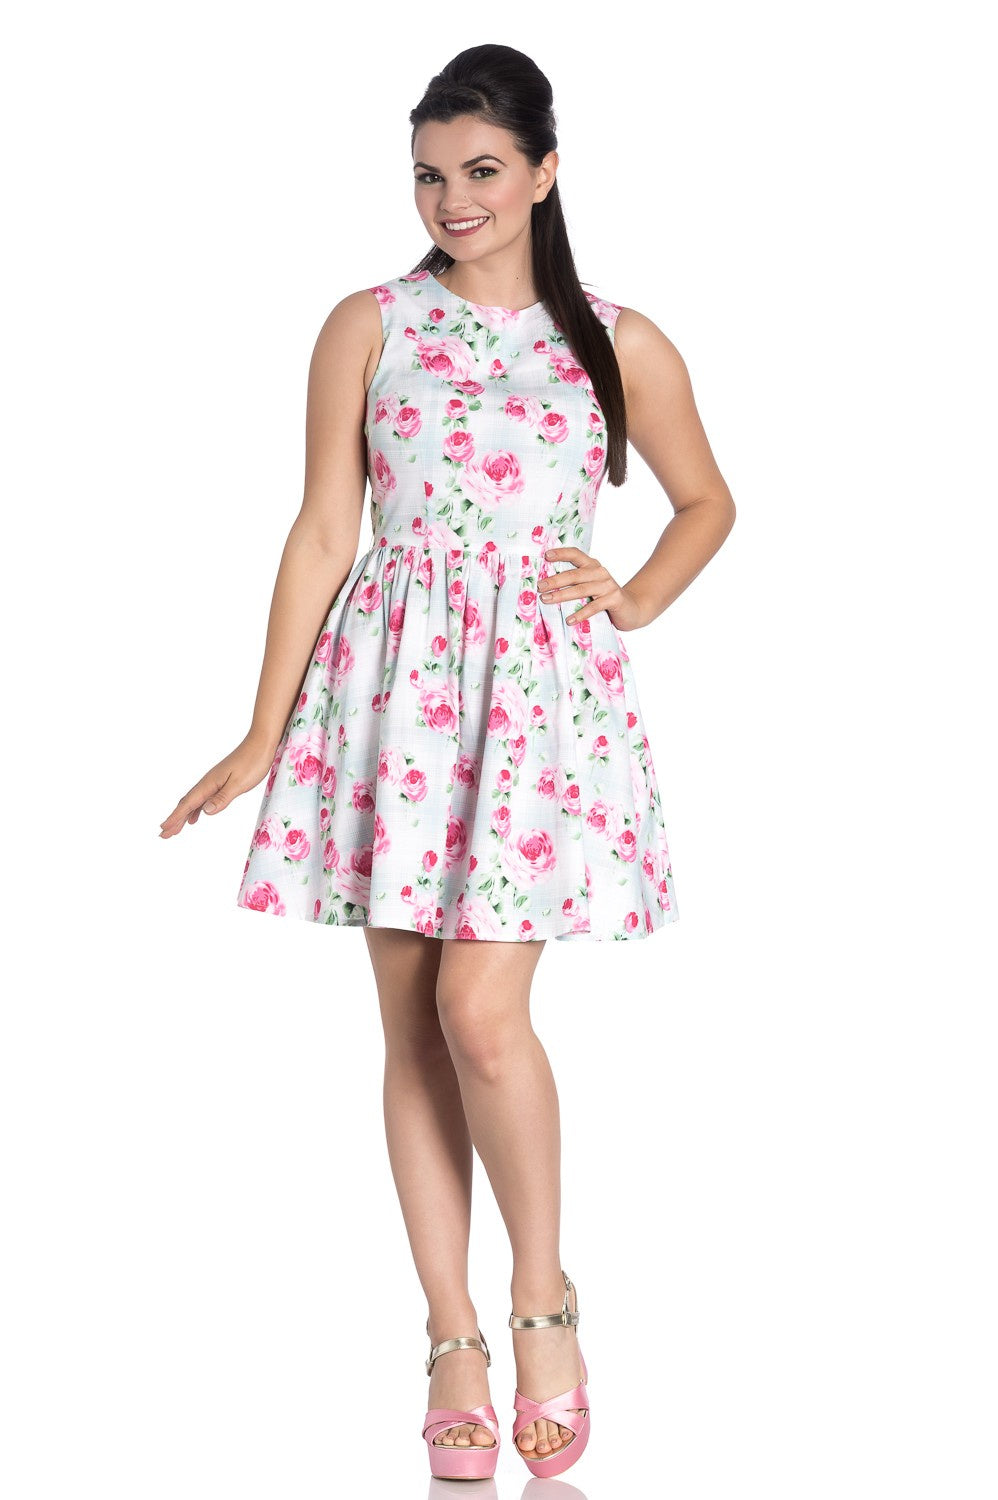 Roses in Bloom Natalie Mini Dress